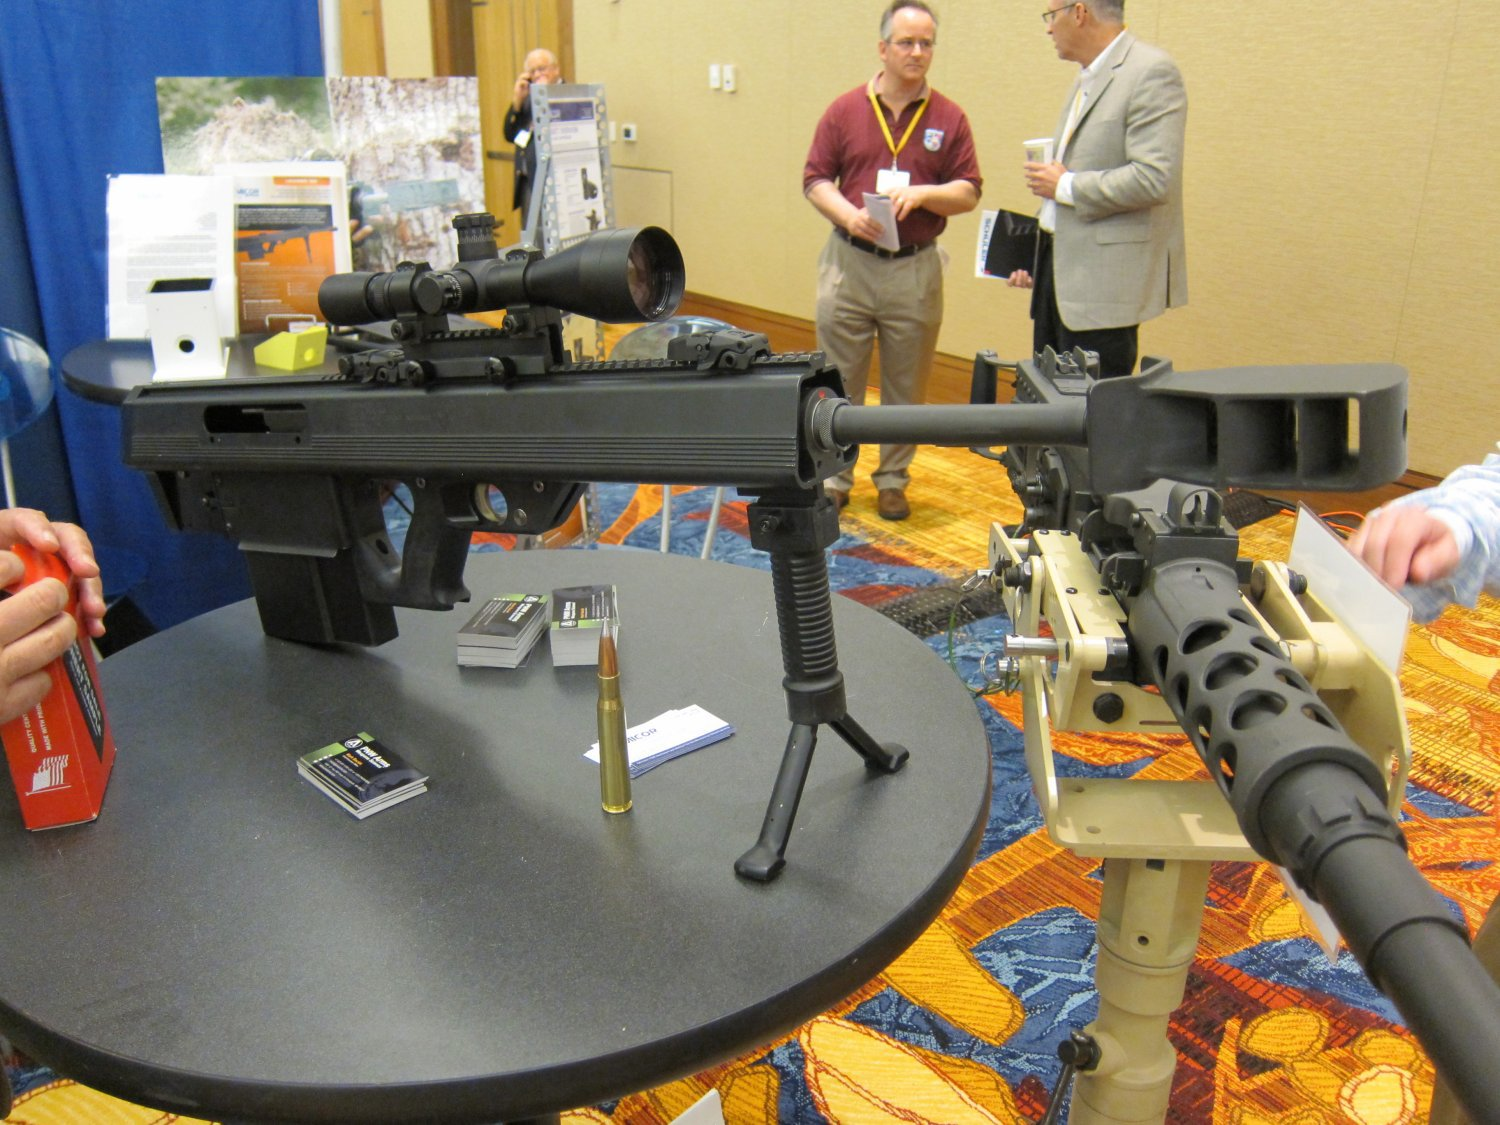 Micor Leader 50 Lightweight Bullpup Semi Auto .50 BMG Sniper Anti Materiel Rifle NDIA Small Arms Symposium 2011 DefenseReview.com DR 2 <!  :en  >MICOR Defense Leader 50 Ultra Compact, Lightweight Bullpup Semi Auto .50 BMG (12.7x99mm NATO) Sniper/Anti Materiel Rifle and PNW Arms Weapons Science .50BMG Ammo at NDIA Infantry Small Arms Systems Symposium 2011: Potential Long Range Lethality Game Changer Combo for 21st Century Infantry Warfare (Photos and Video!)<!  :  >